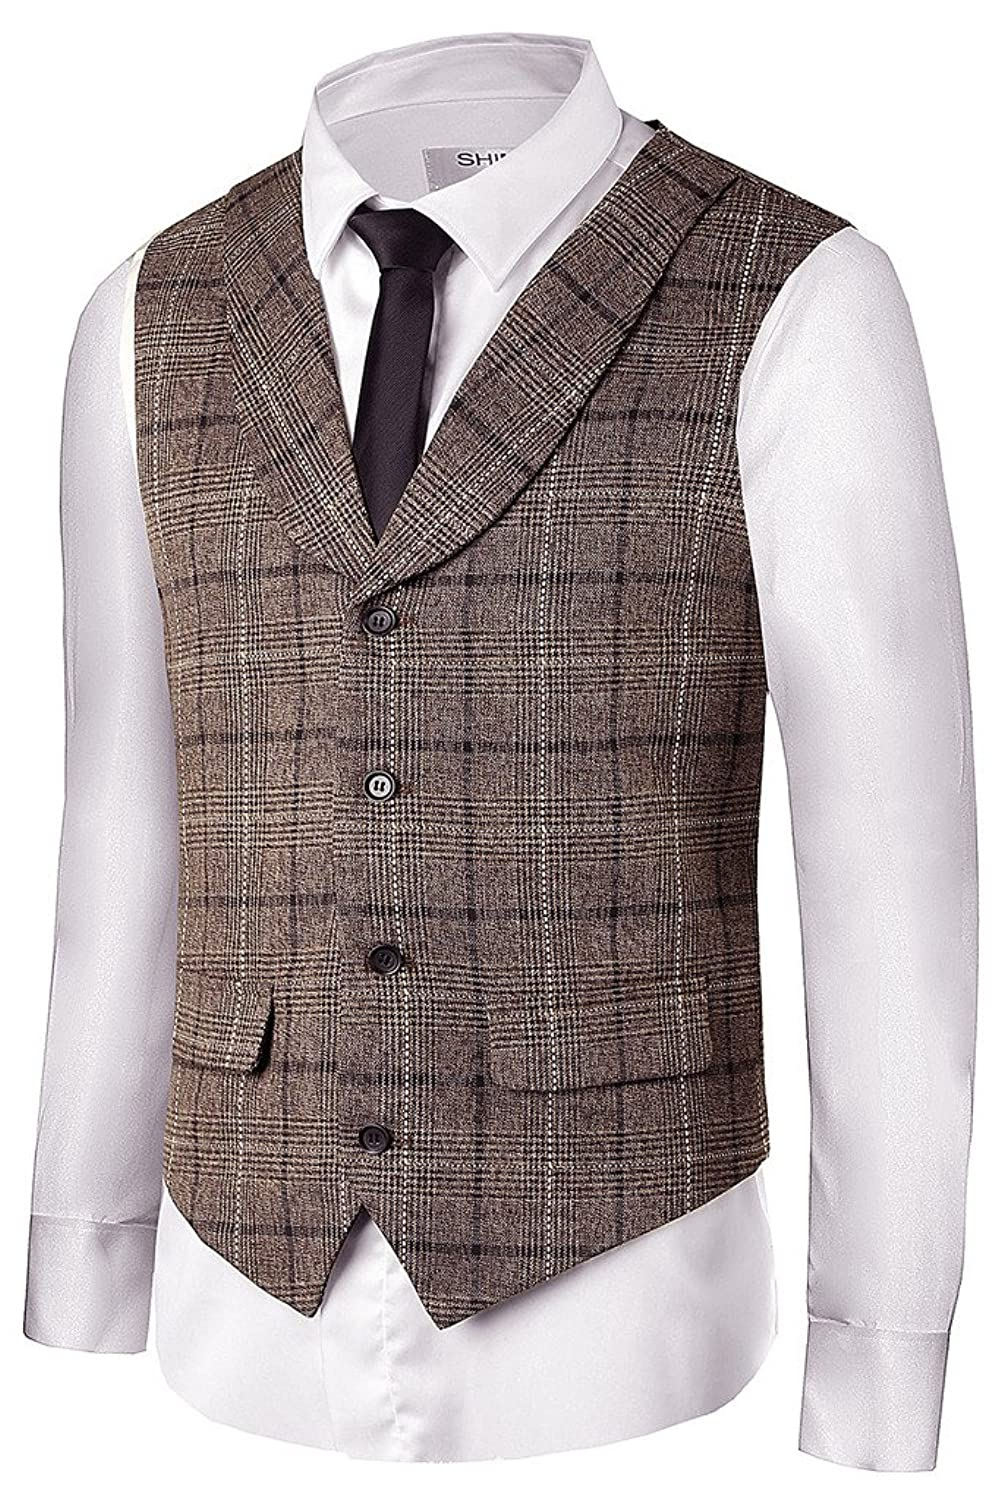 Victorian Men's Clothing Hanayome Mens Gentleman Top Design Casual Waistcoat Business Suit Vest VS17 $28.50 AT vintagedancer.com